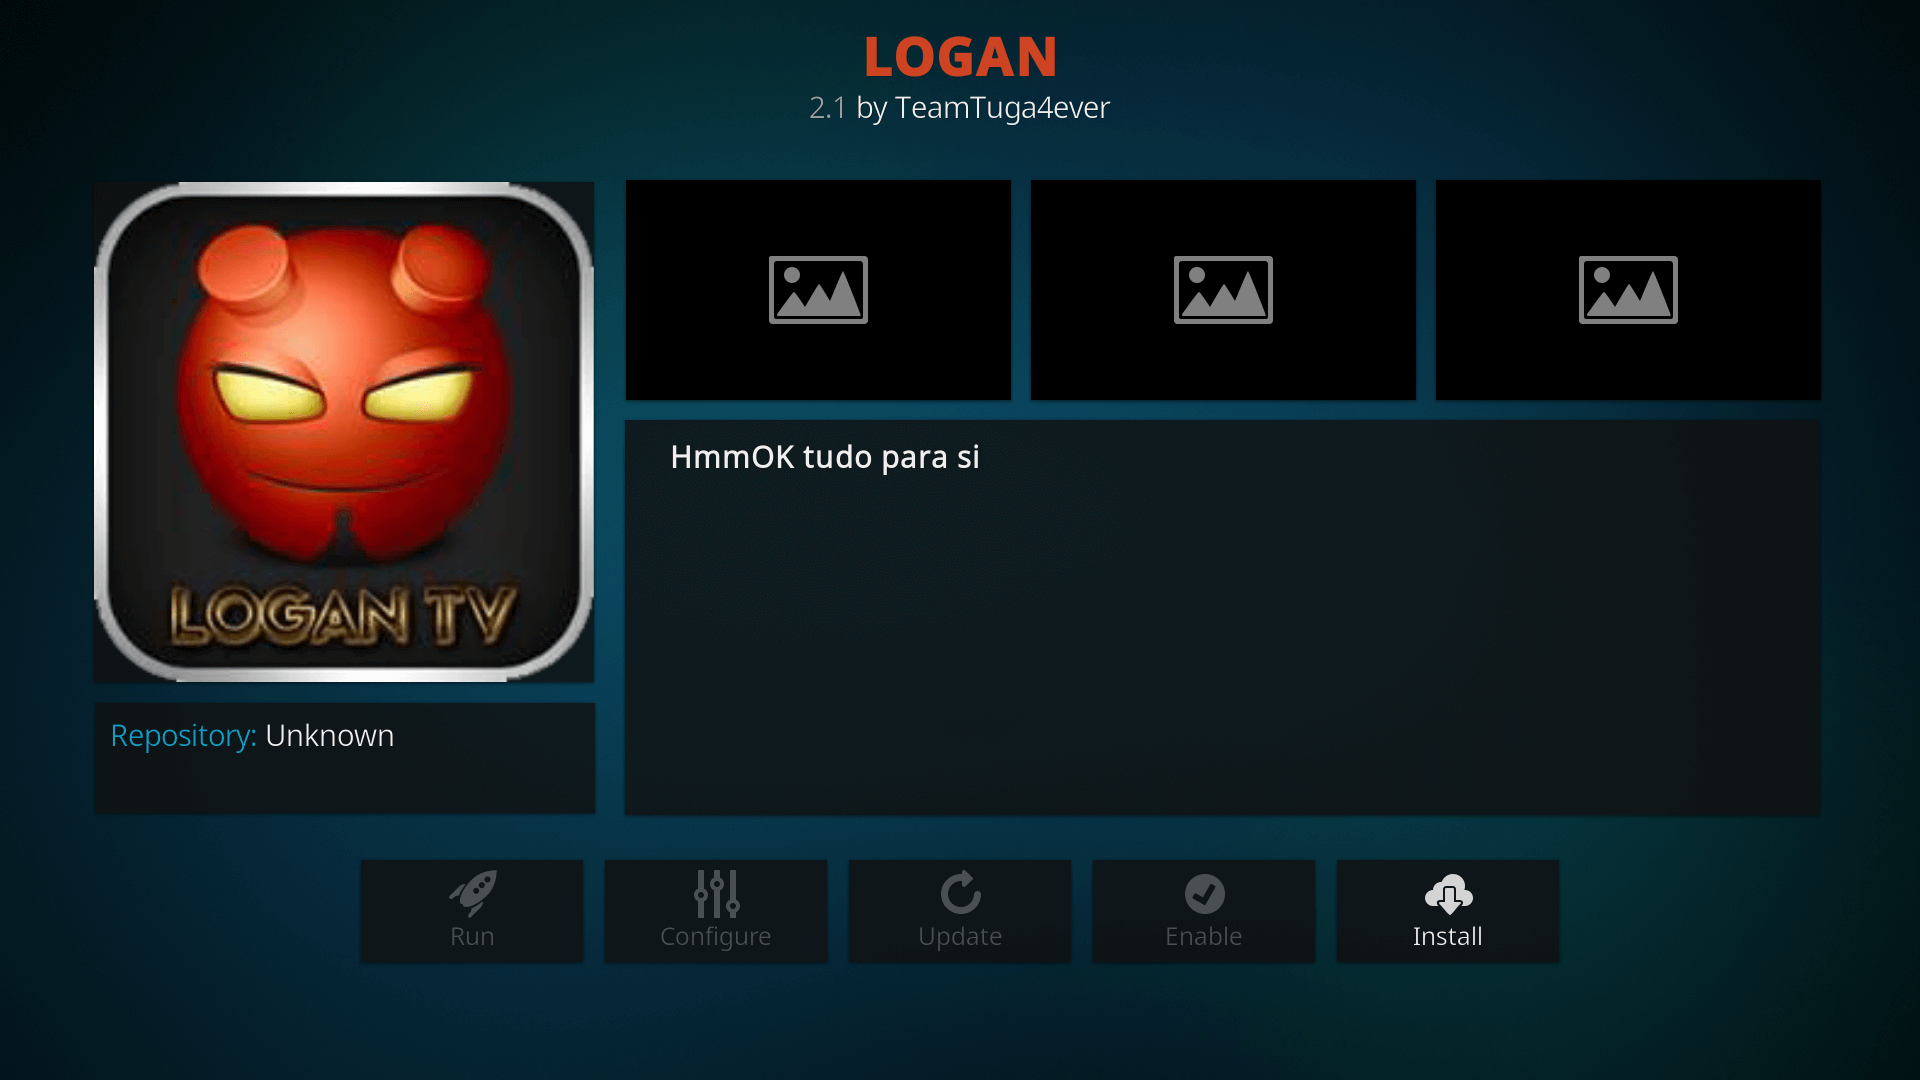 How to Install Logan TV Kodi addon on Krypton